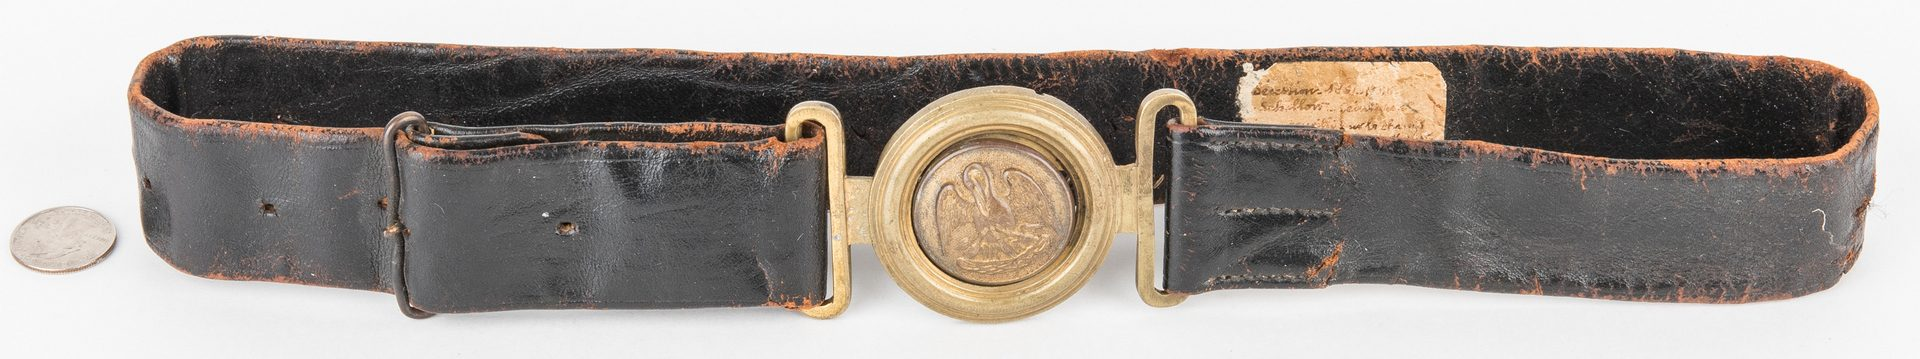 Lot 269: Confederate LA Officer's Sword Belt with Plate on Leather